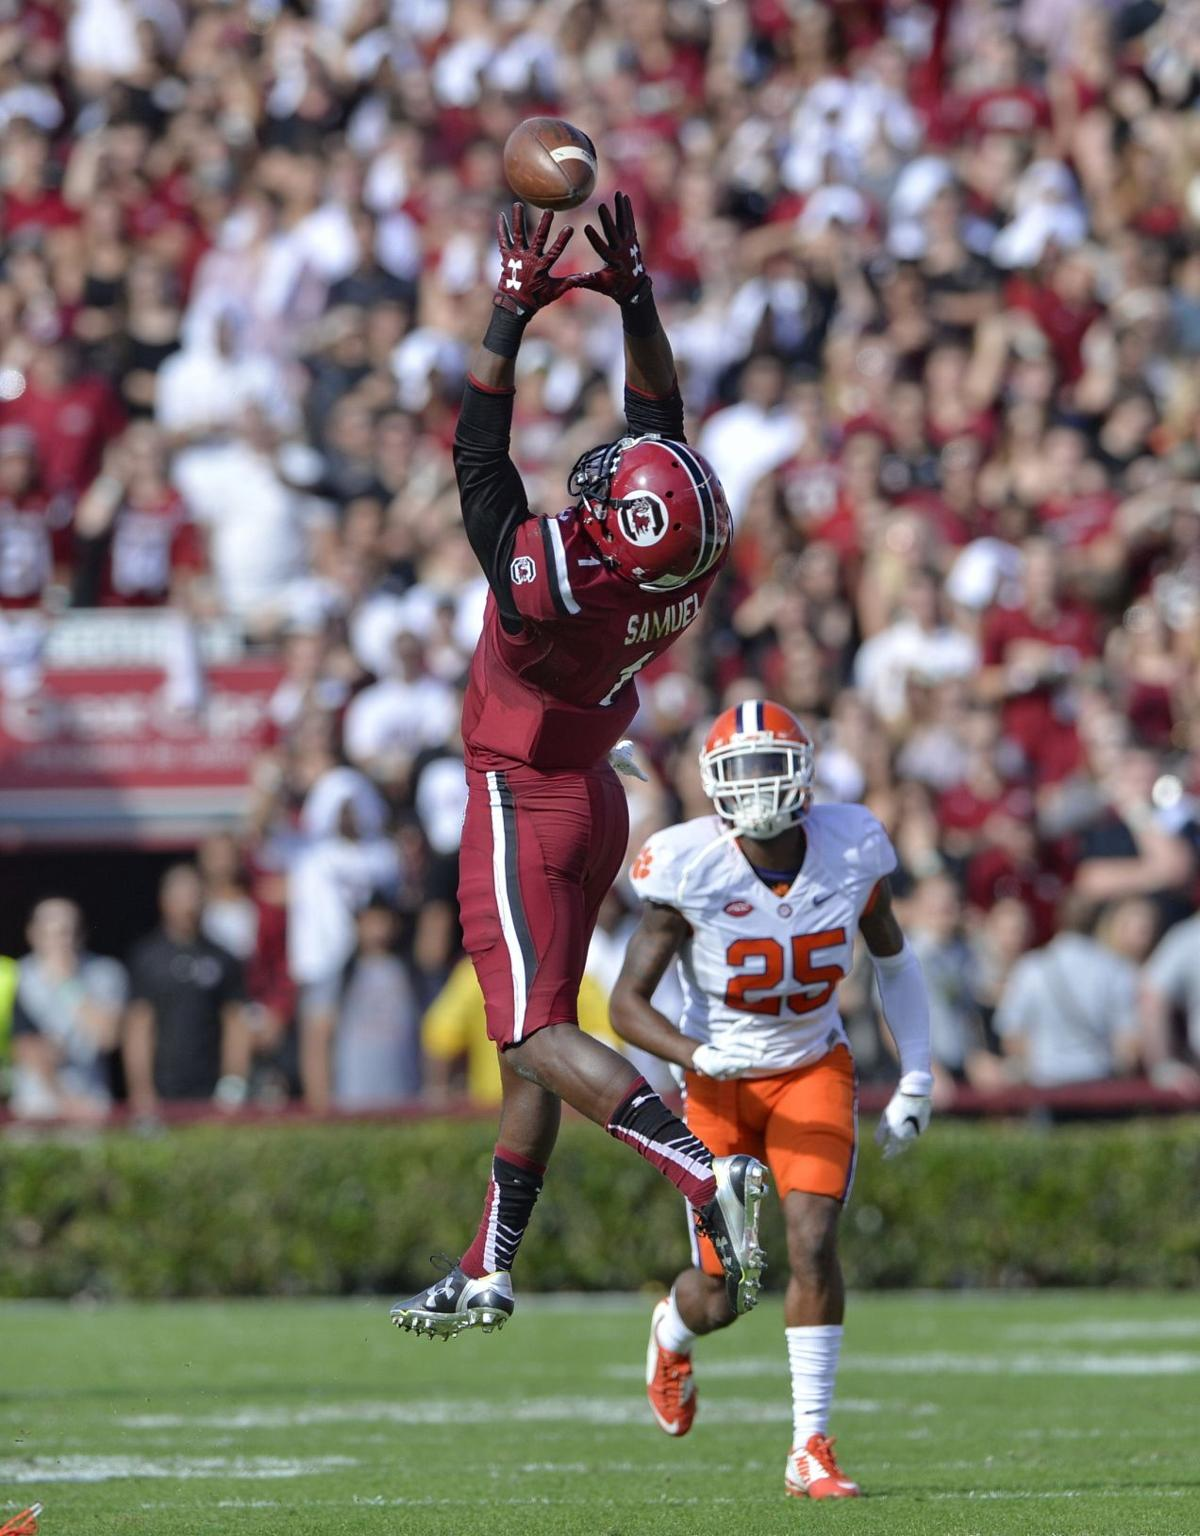 Top 10 USC, No. 5: Healthy Deebo Samuel could be a major playmaker for Gamecocks